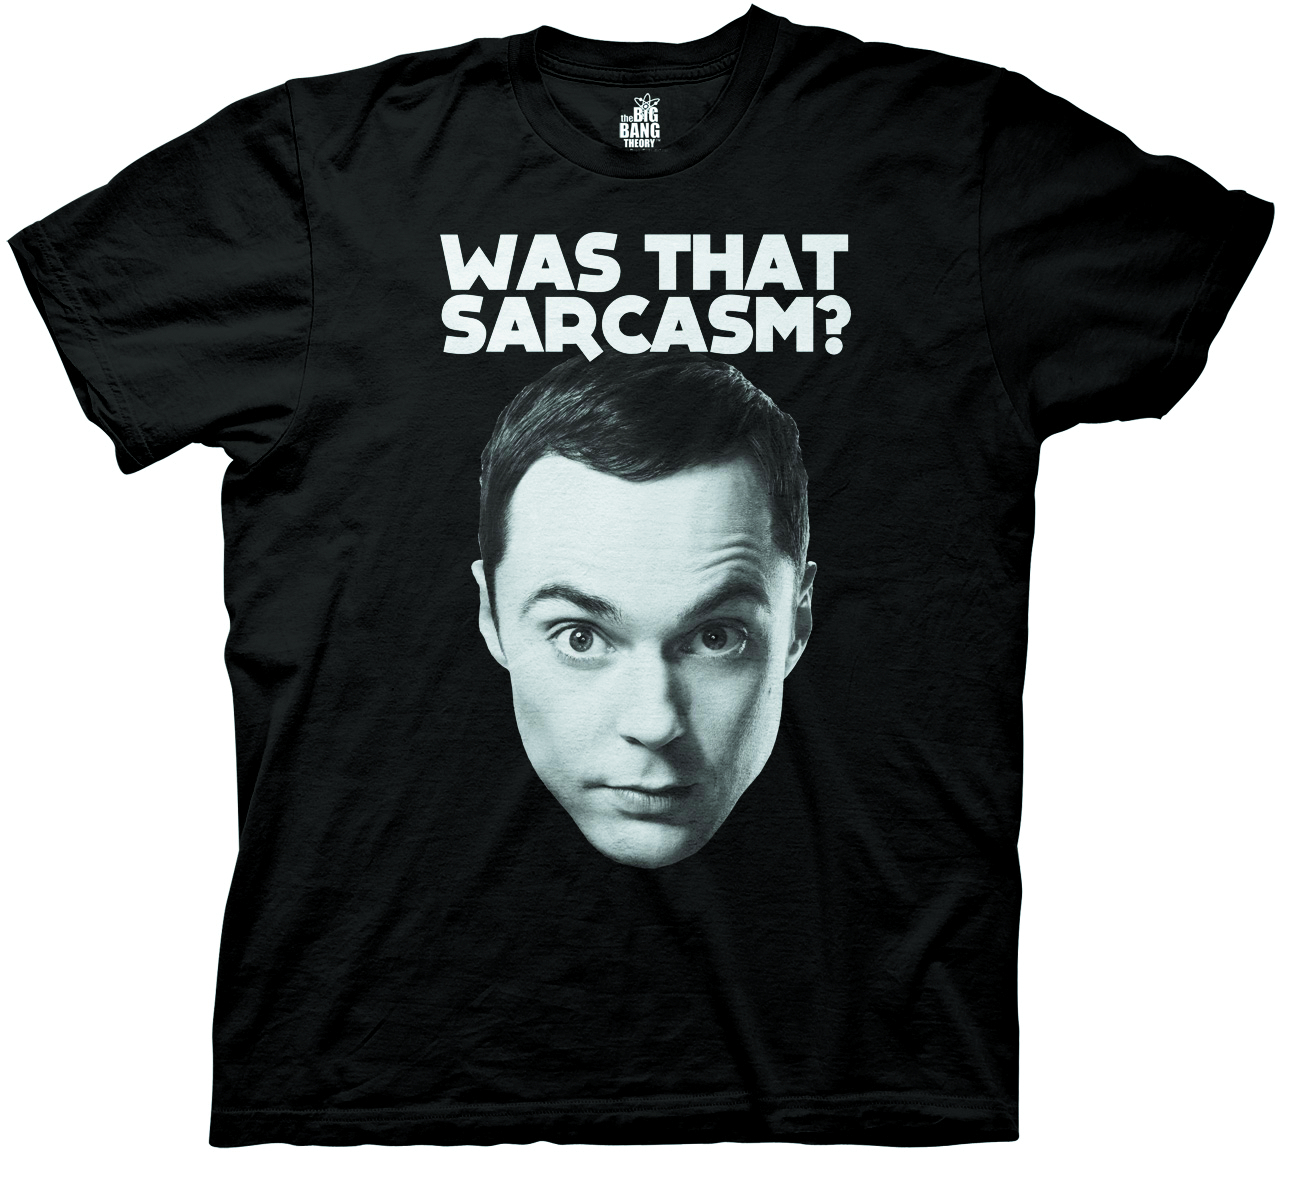 BIG BANG THEORY WAS THAT SARCASM BLK T/S MED